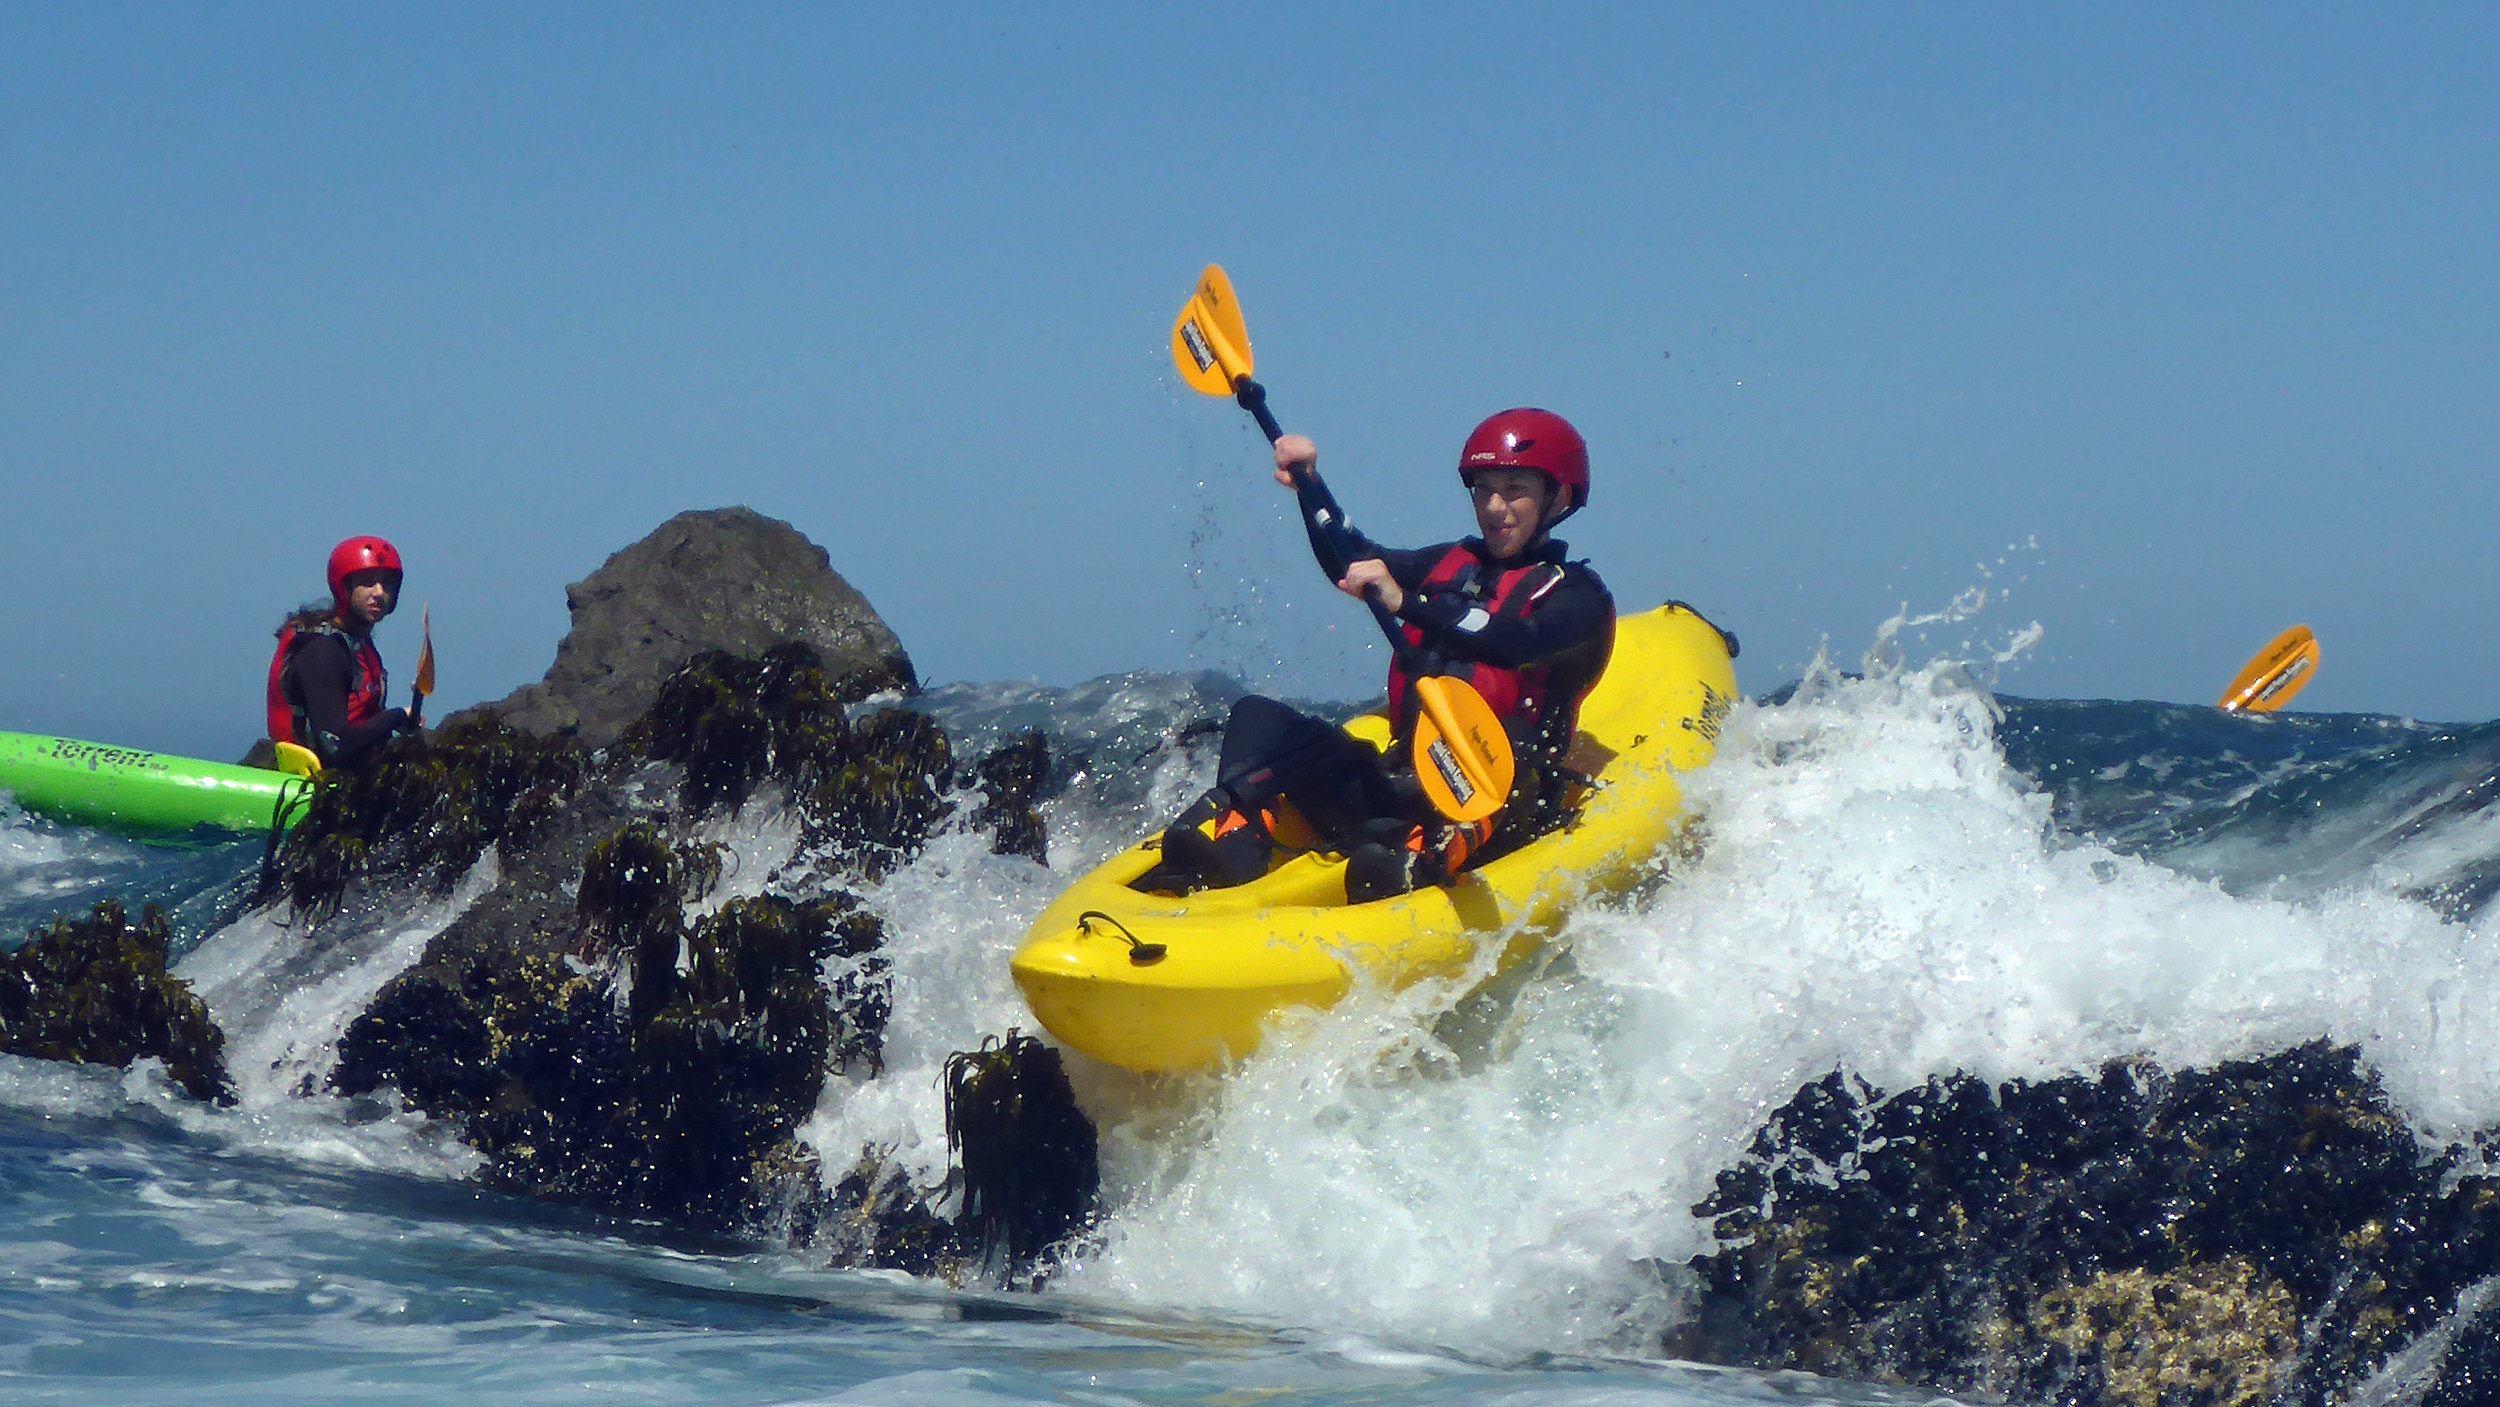 Whitewater ocean kayaking aka rock gardening on the Mendocino Coast of California. Photo Liquid Fusion Kayaking